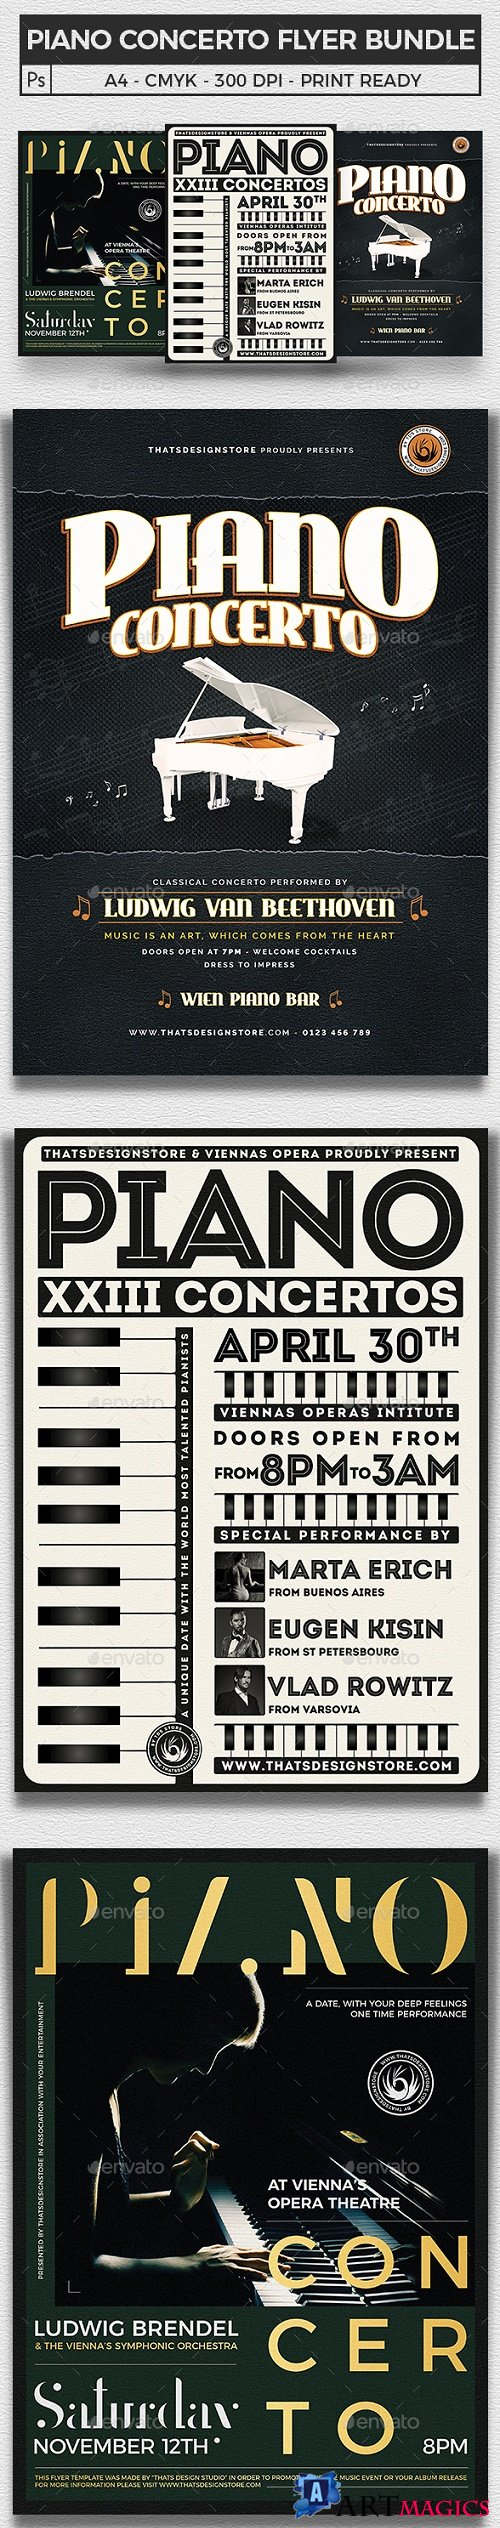 Piano Concerto Flyer Bundle - 21964267 - 2570953